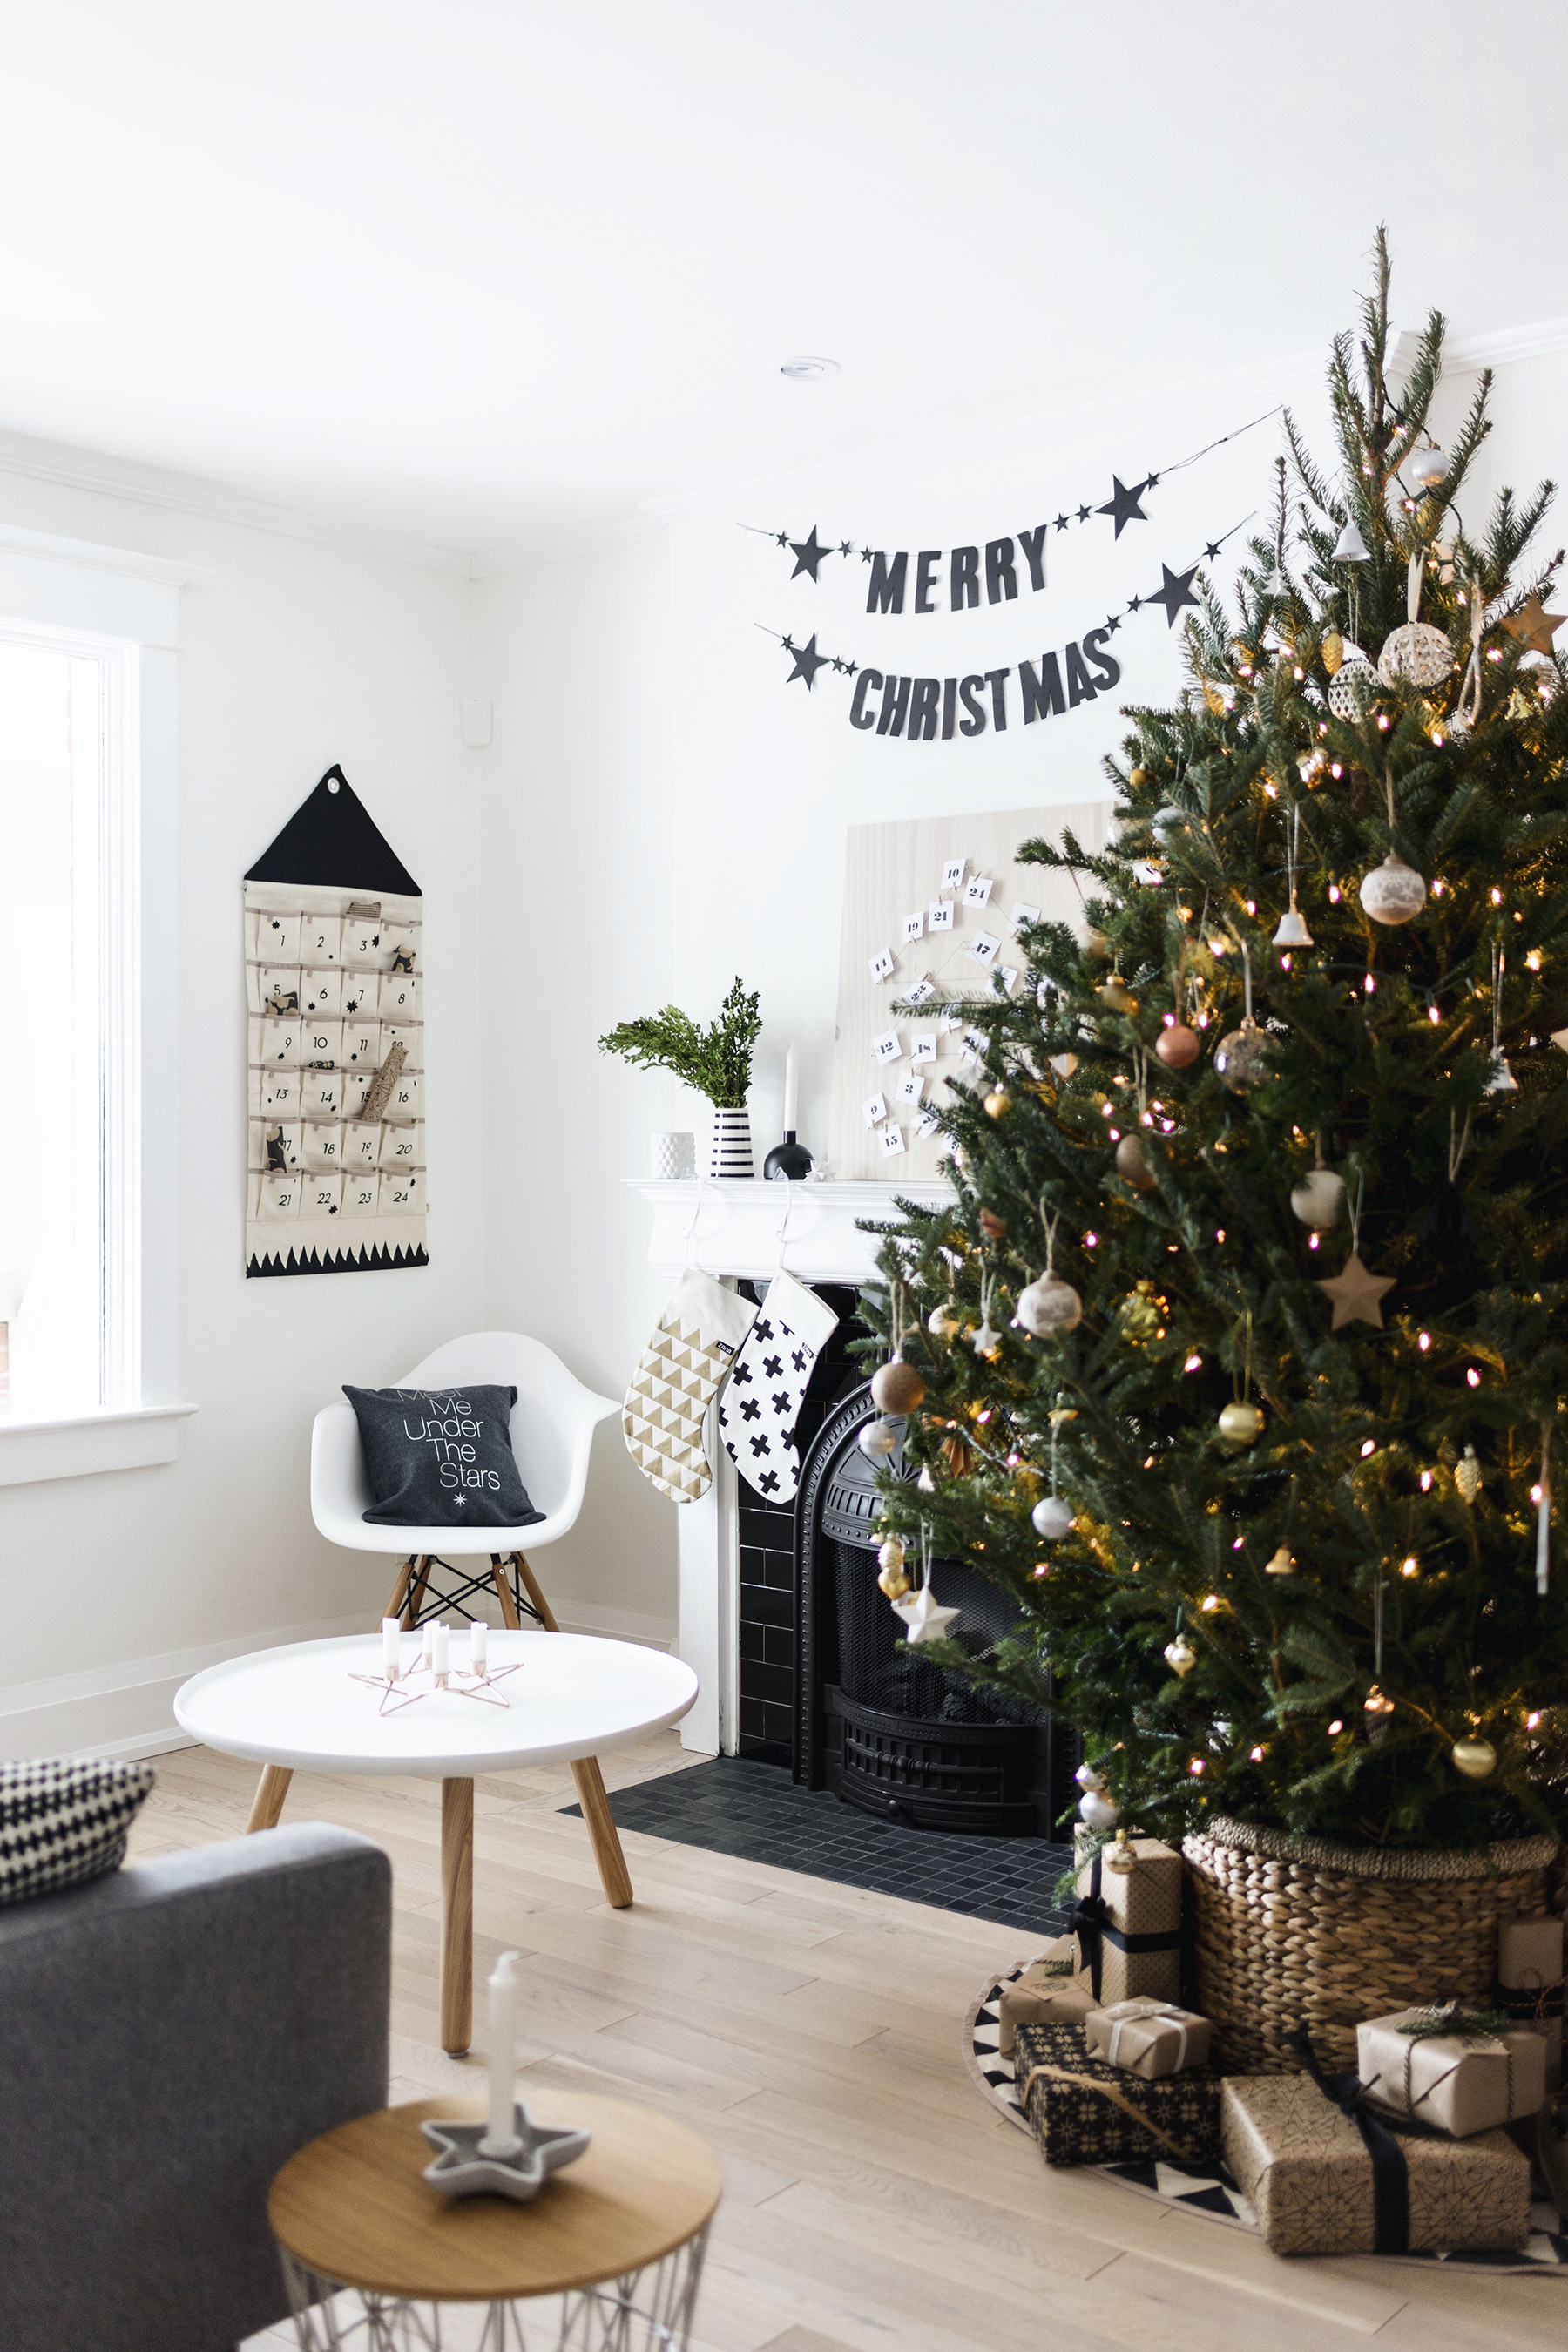 Scandinavian Christmas tree + decor - stockings, banner | Happy Grey Lucky